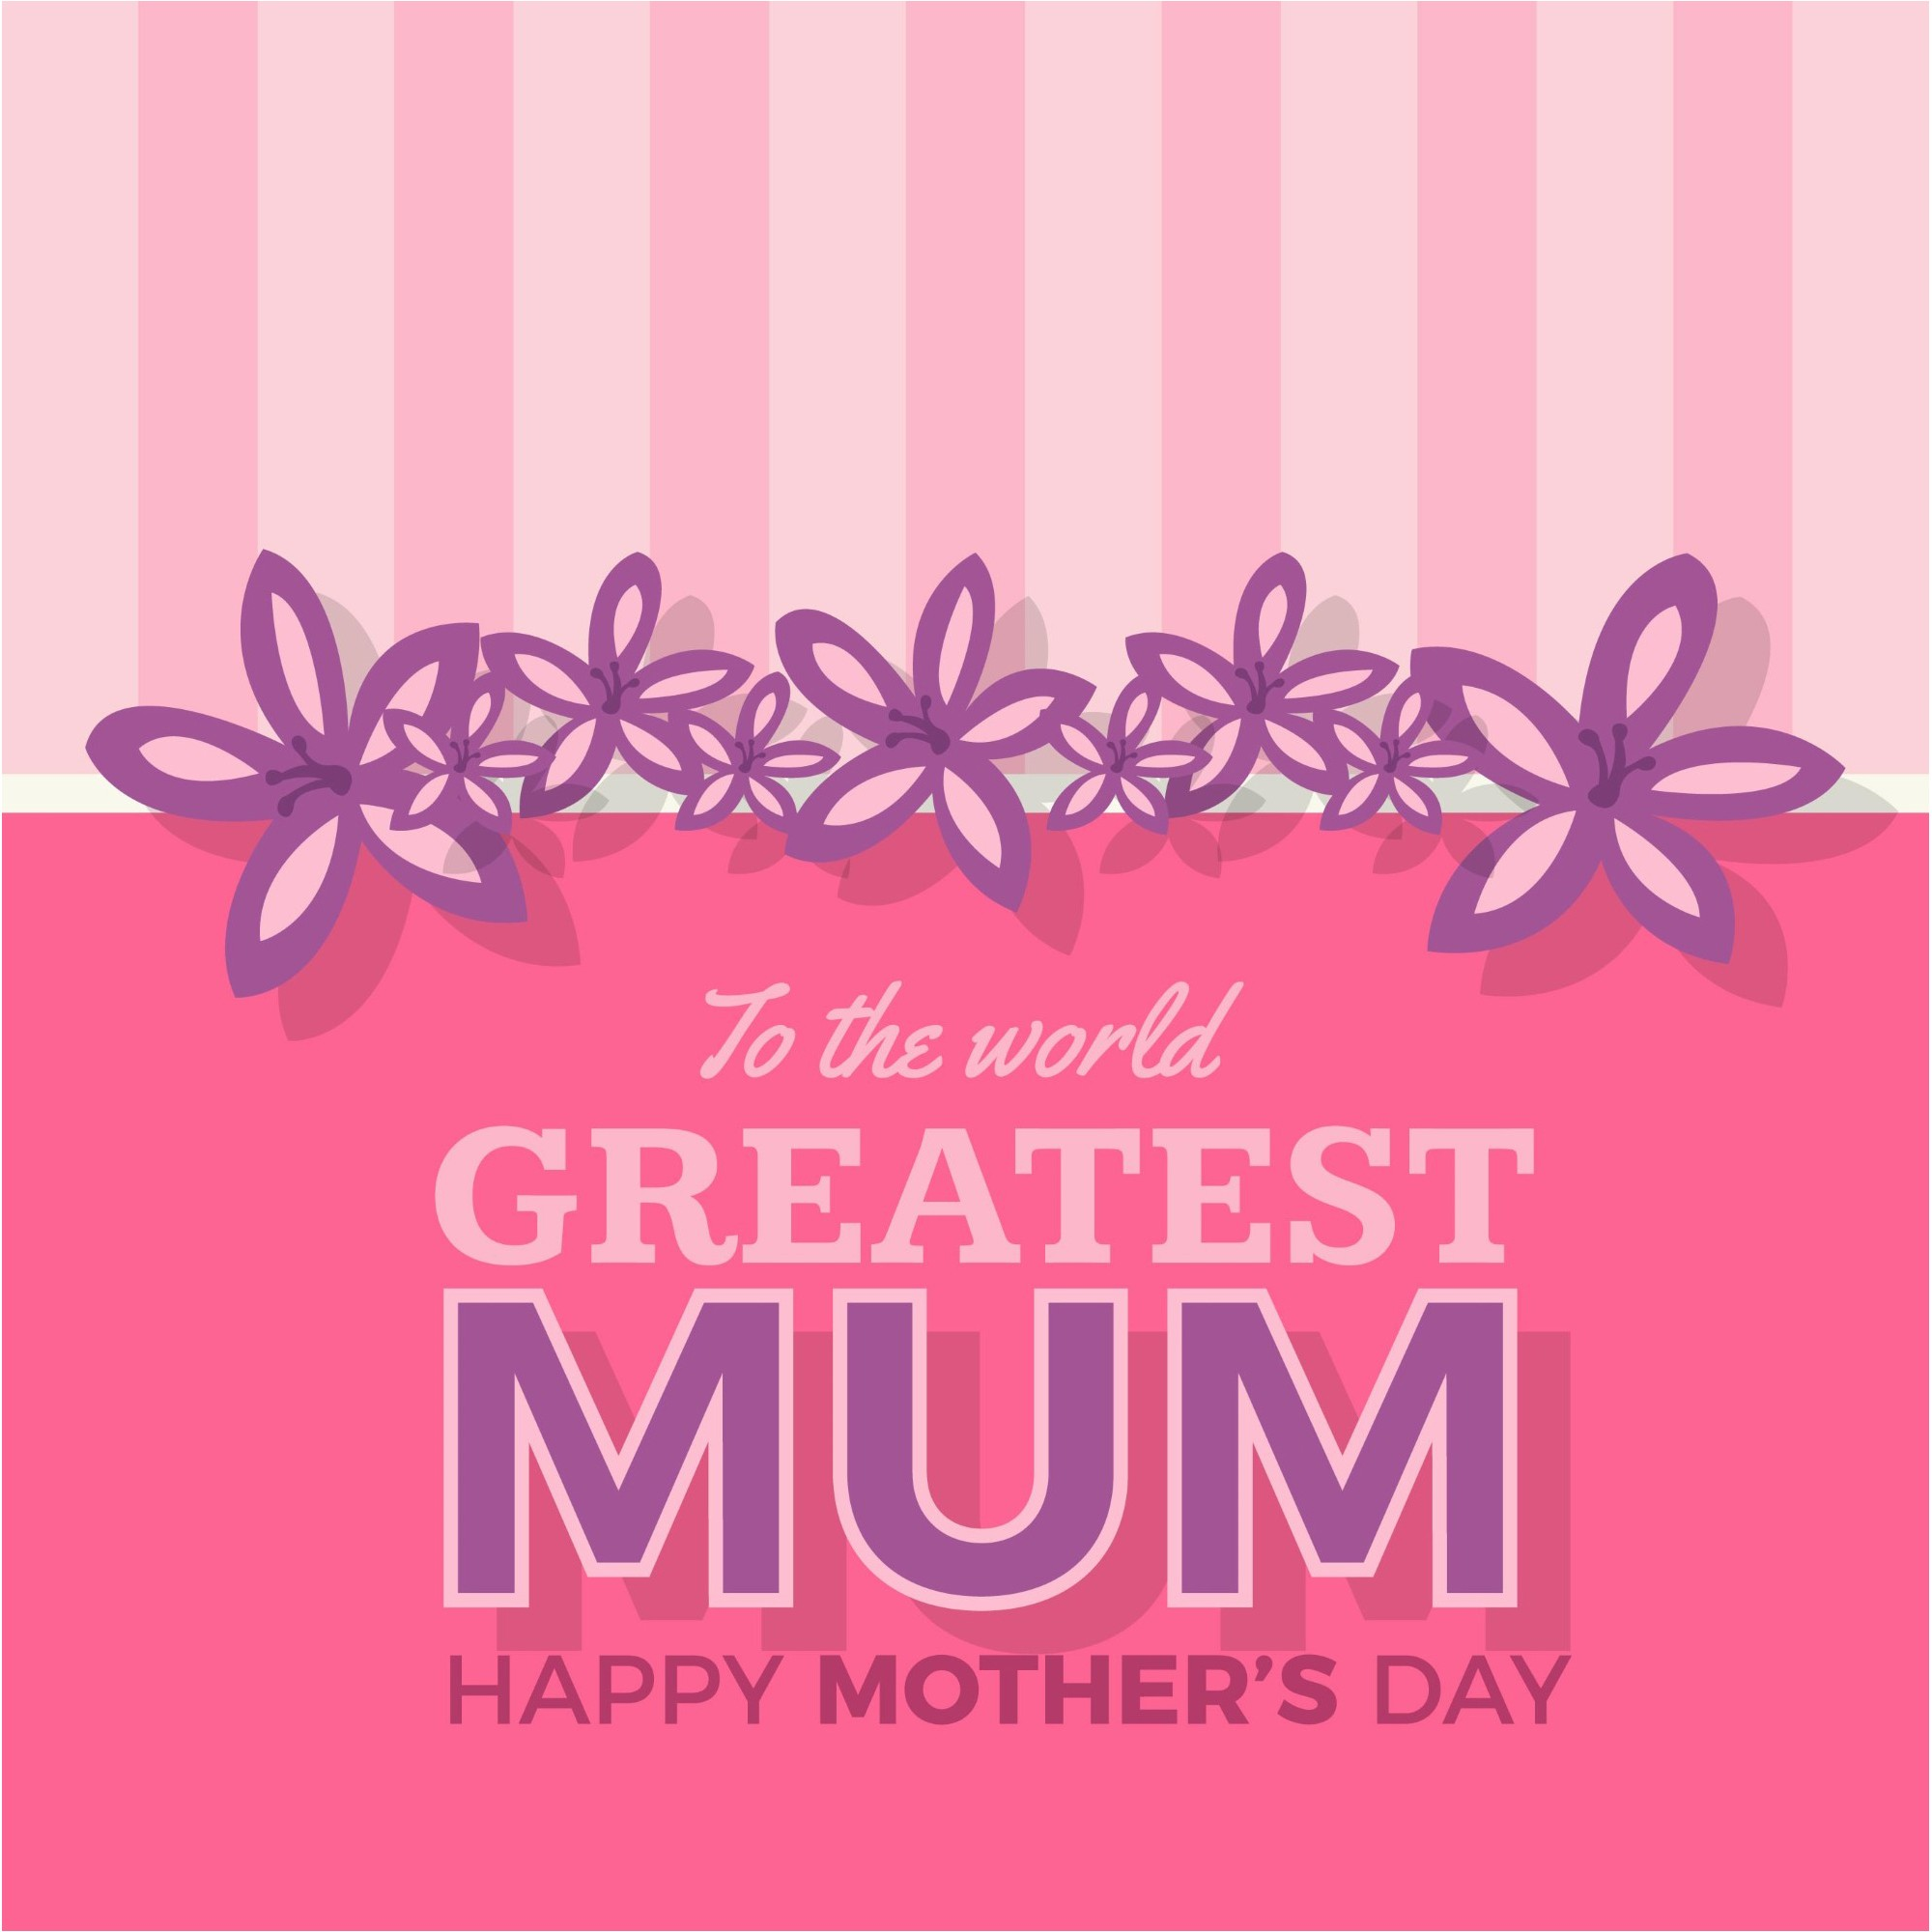 mother's day background ·① download free wallpapers for